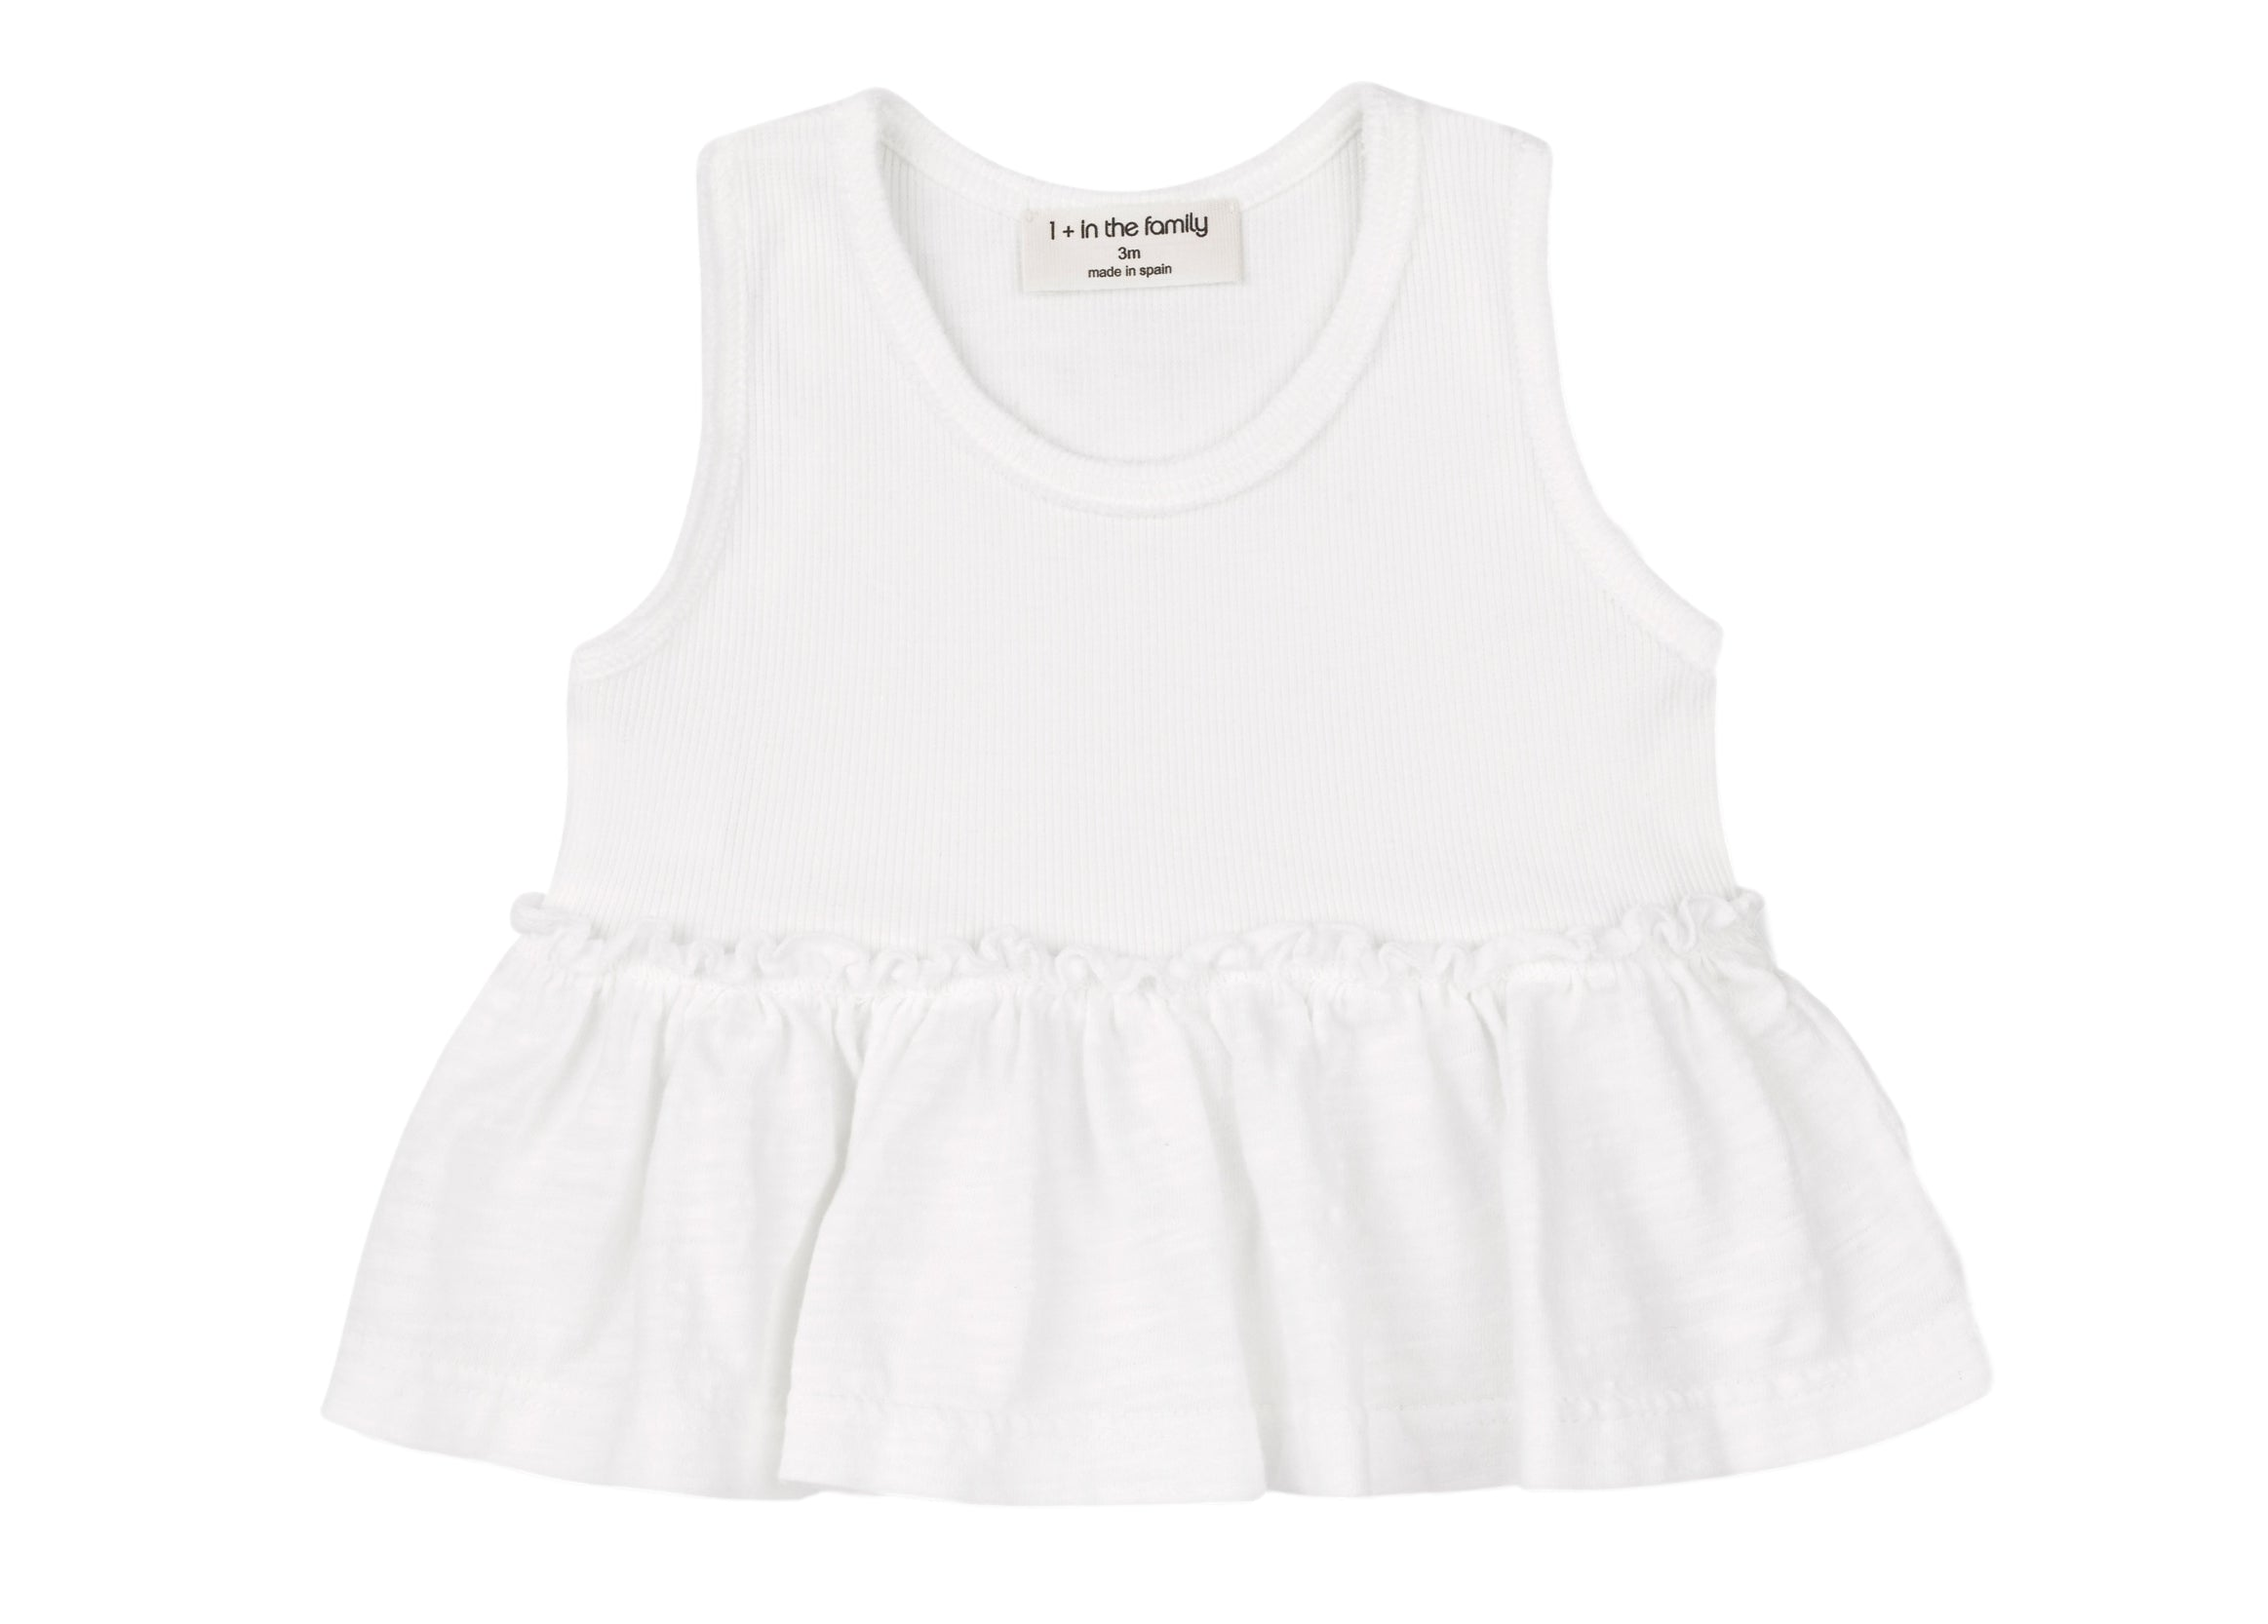 One + In the Family Baby Girl Leuca & Calais Outfit Set